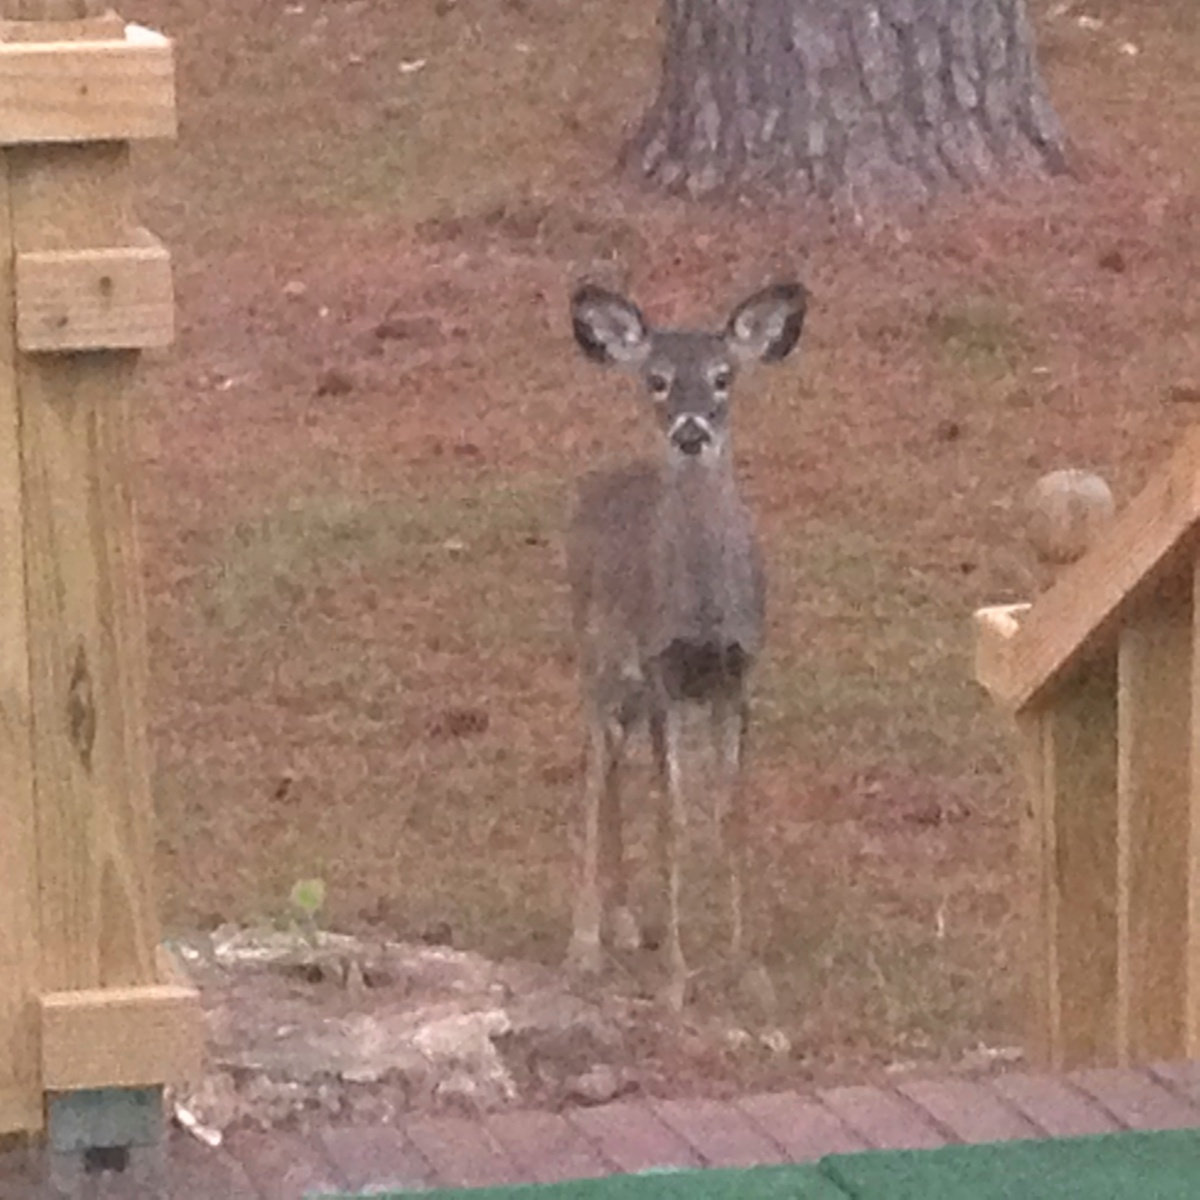 The fawn that wandered into the back yard